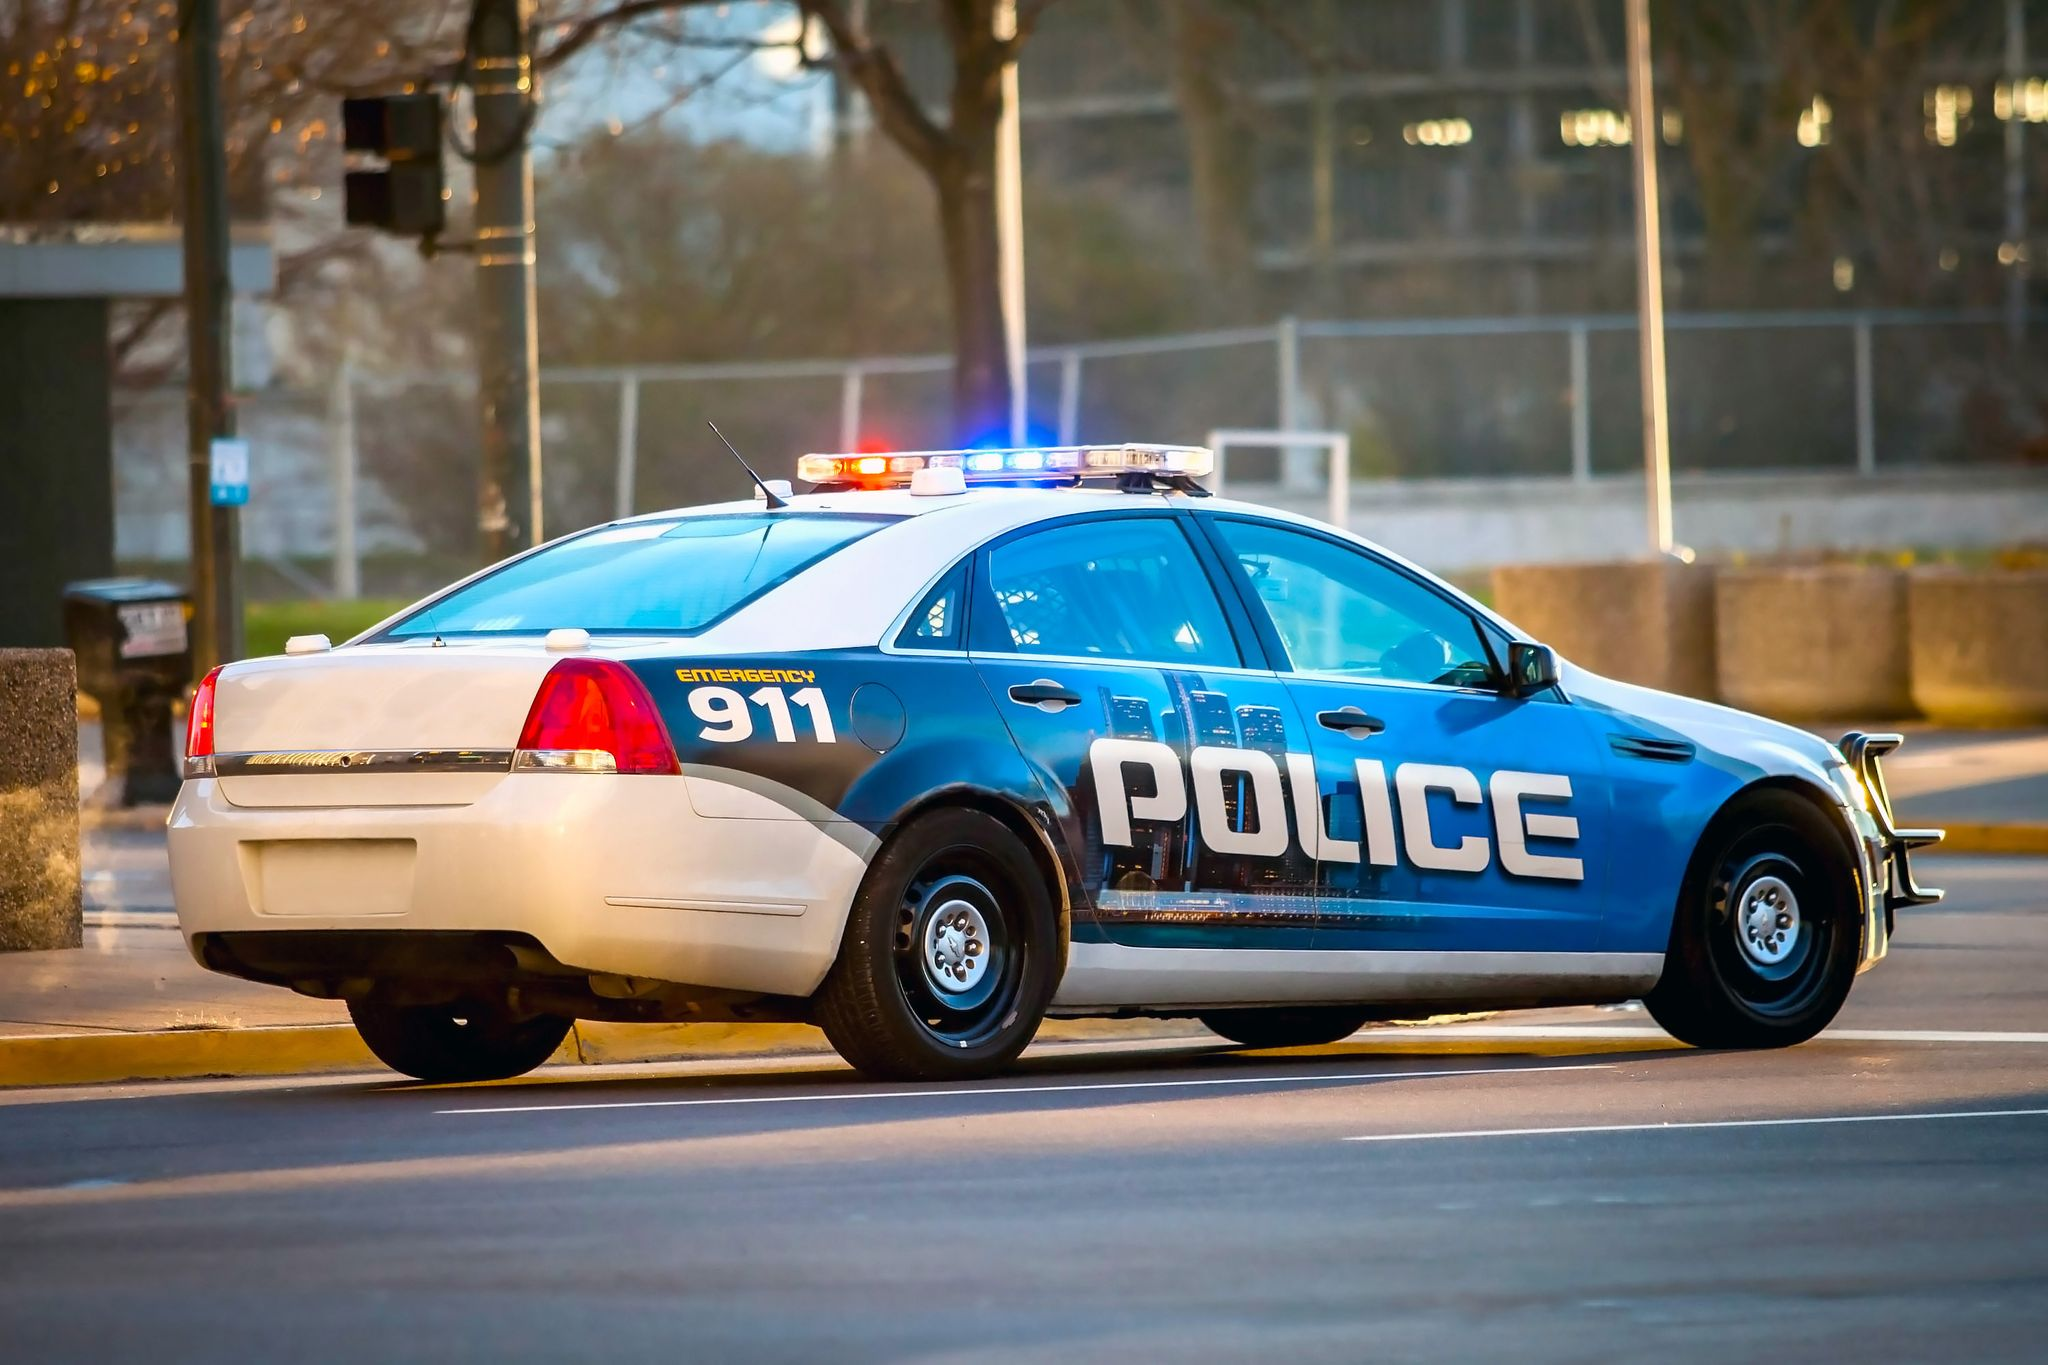 A police car driving down a road. | Source: Shutterstock